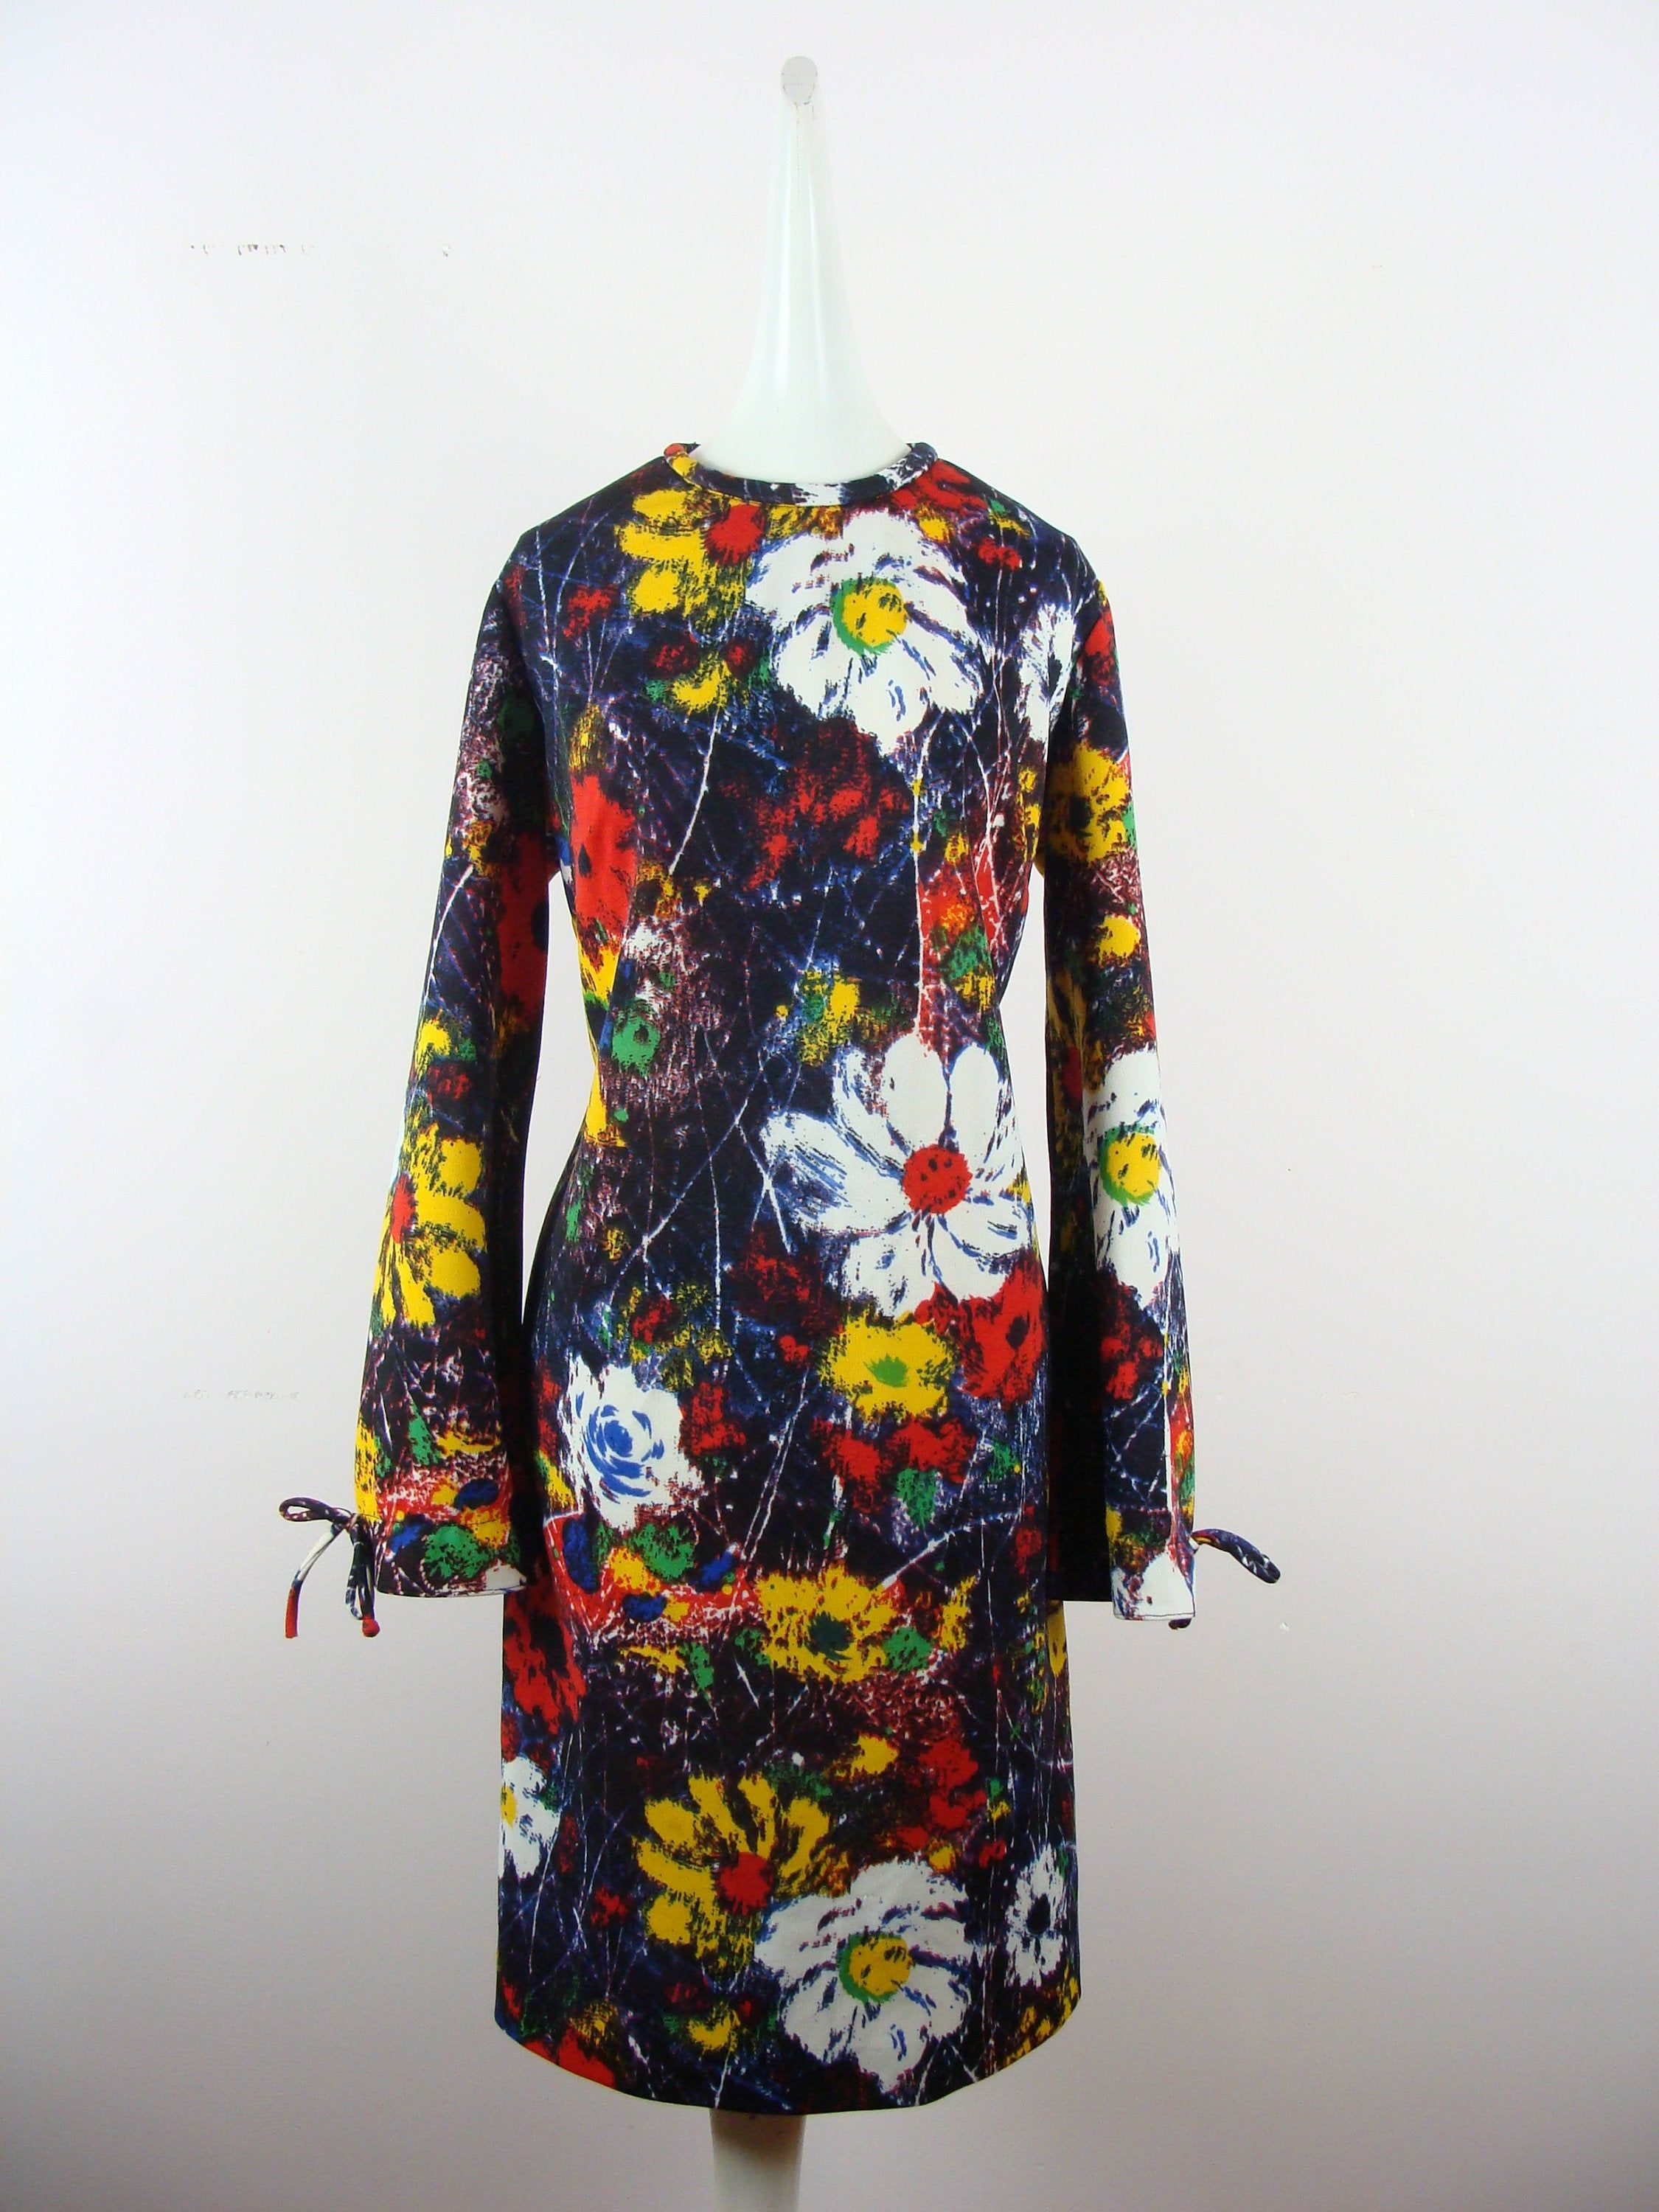 Vintage Psychedelic Dress 70s Abstract Floral Op Art Long Etsy Long Sleeve Shift Dress 70s Dress Floral Print Dress [ 3000 x 2250 Pixel ]